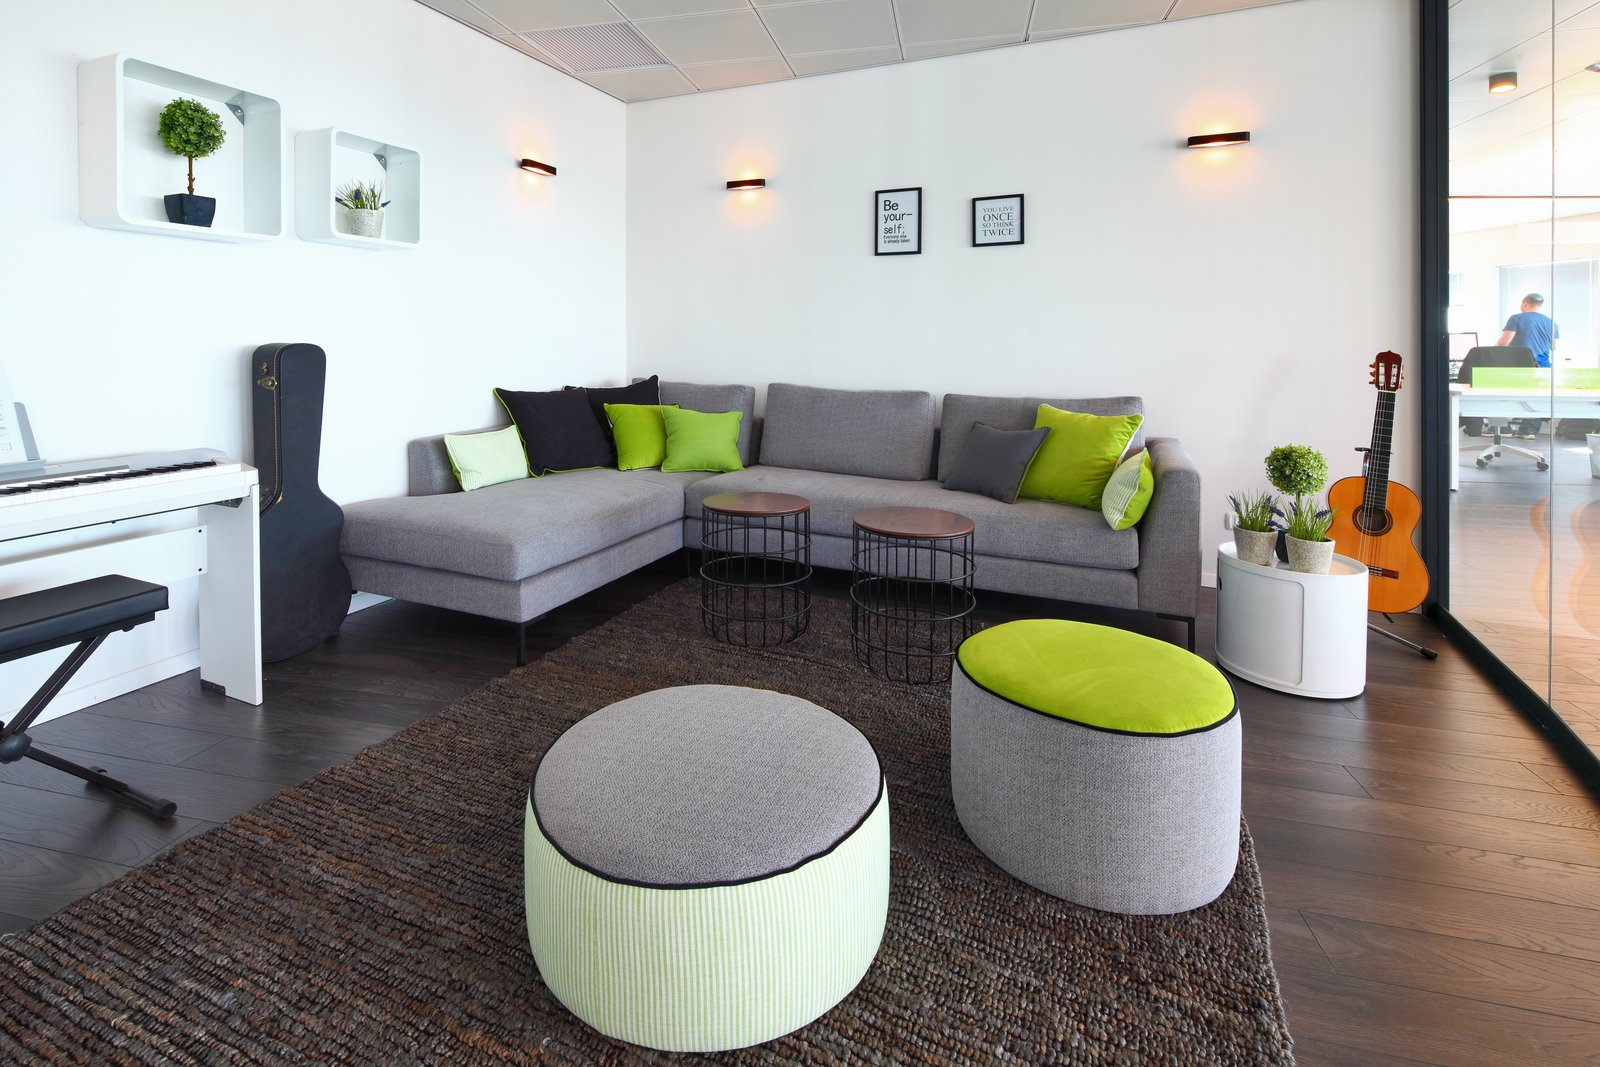 Houzz offices tel aviv office snapshots for Office interior design gallery